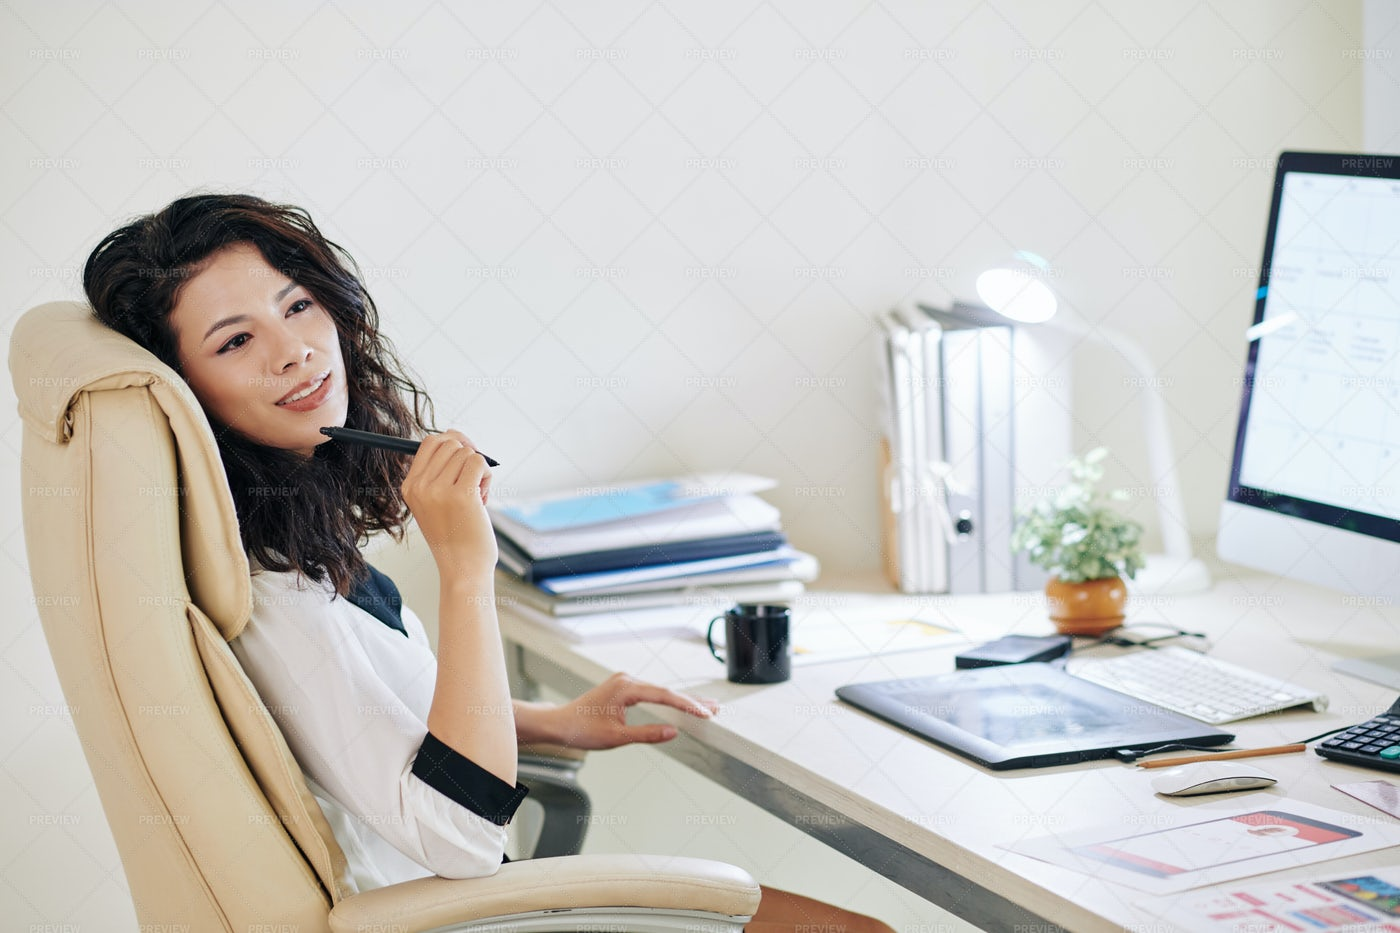 Woman Dreaming In Office: Stock Photos